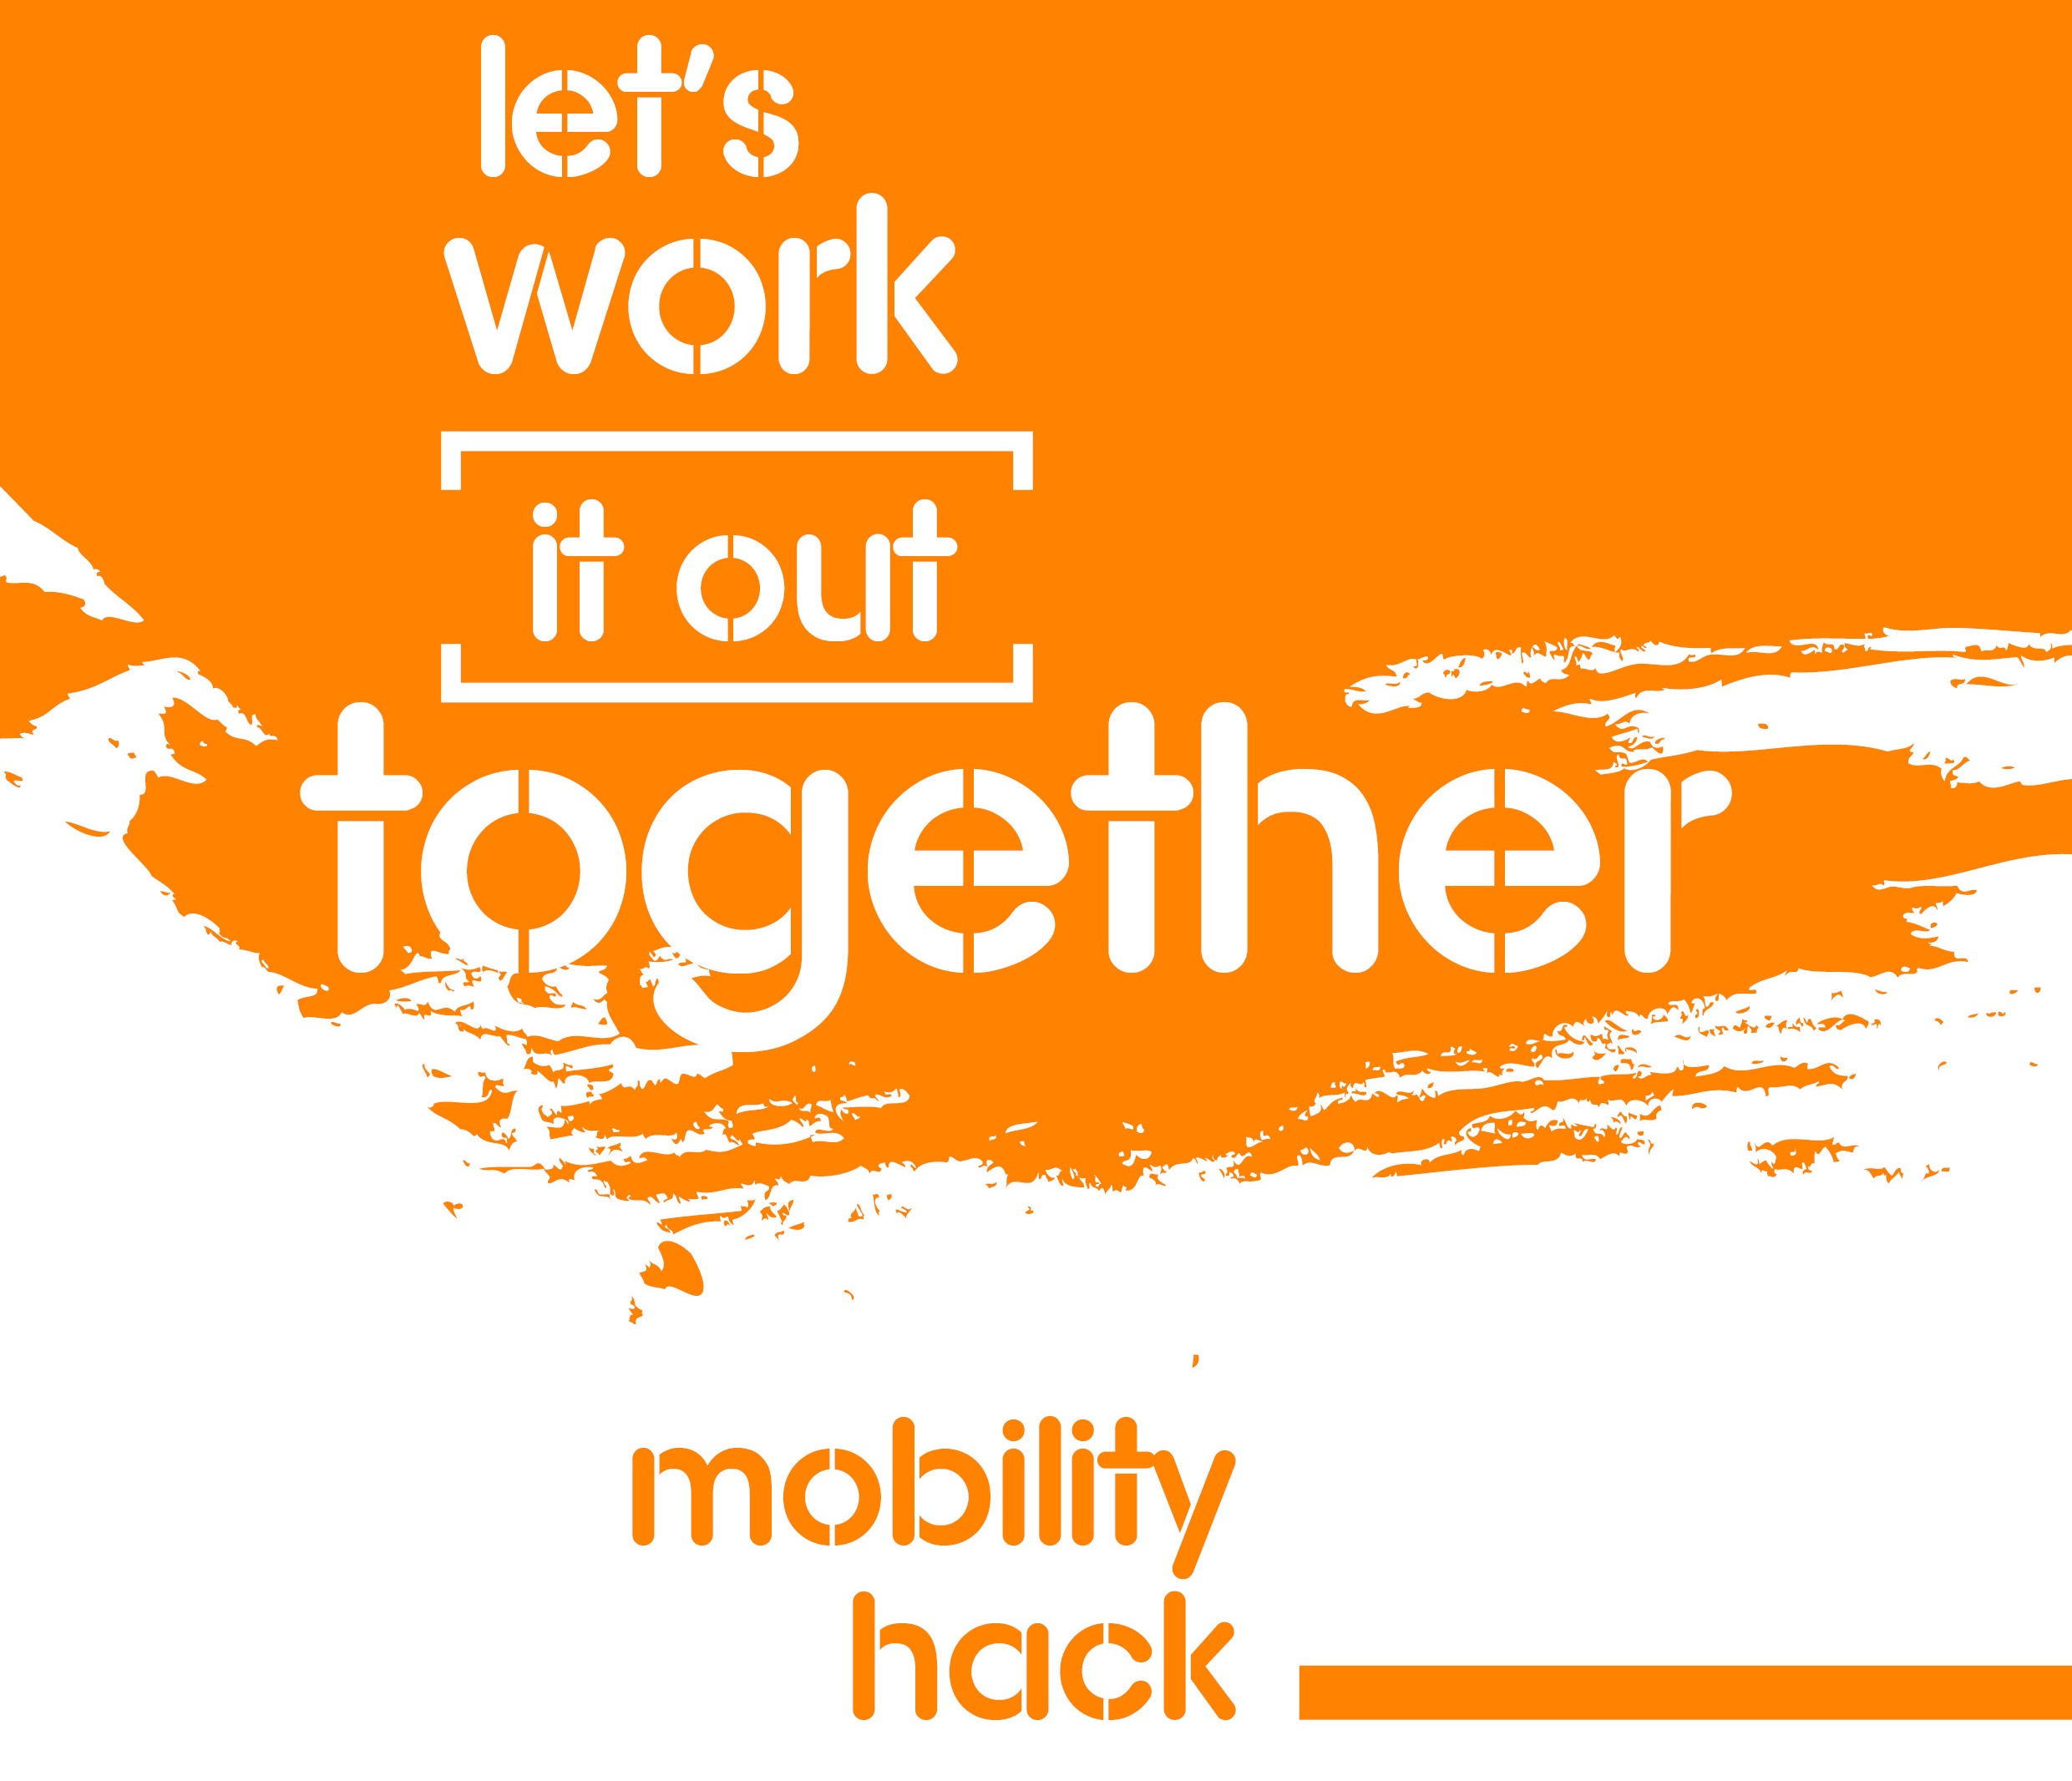 mobility-hack